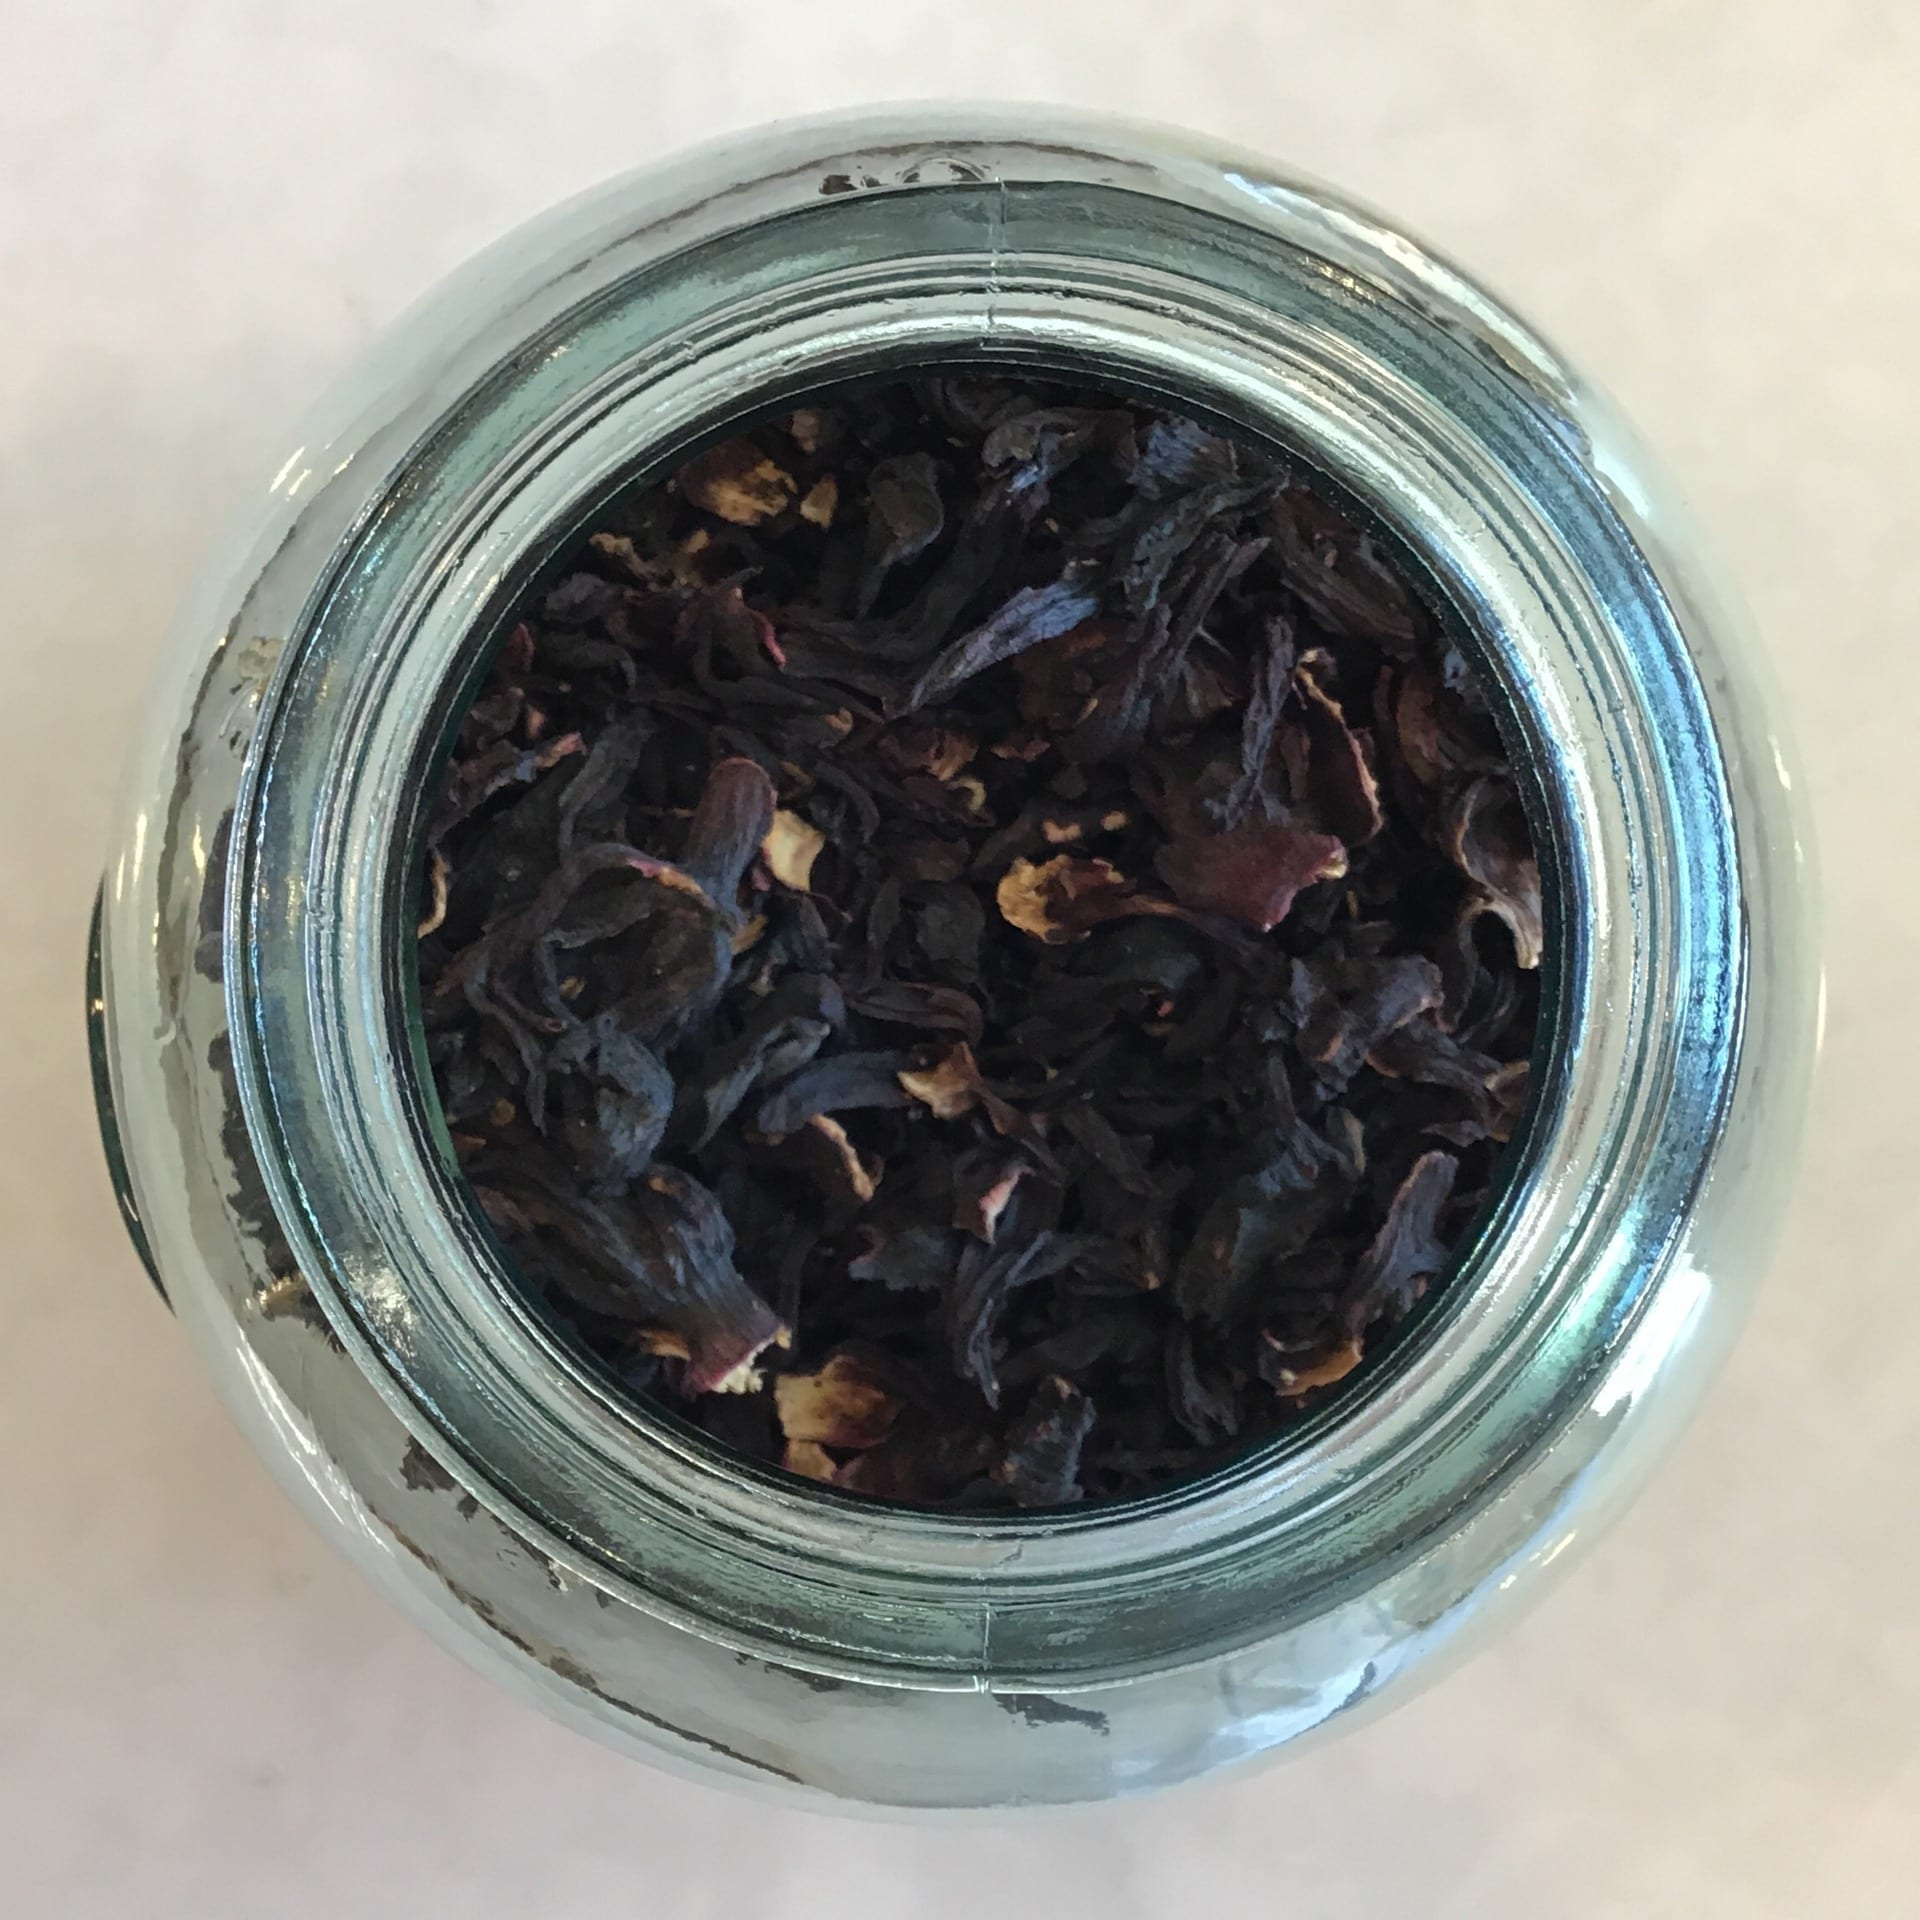 Hibiscus flowers add a delicious cranberry, slightly sweet and pretty pink color to iced or hot drinks